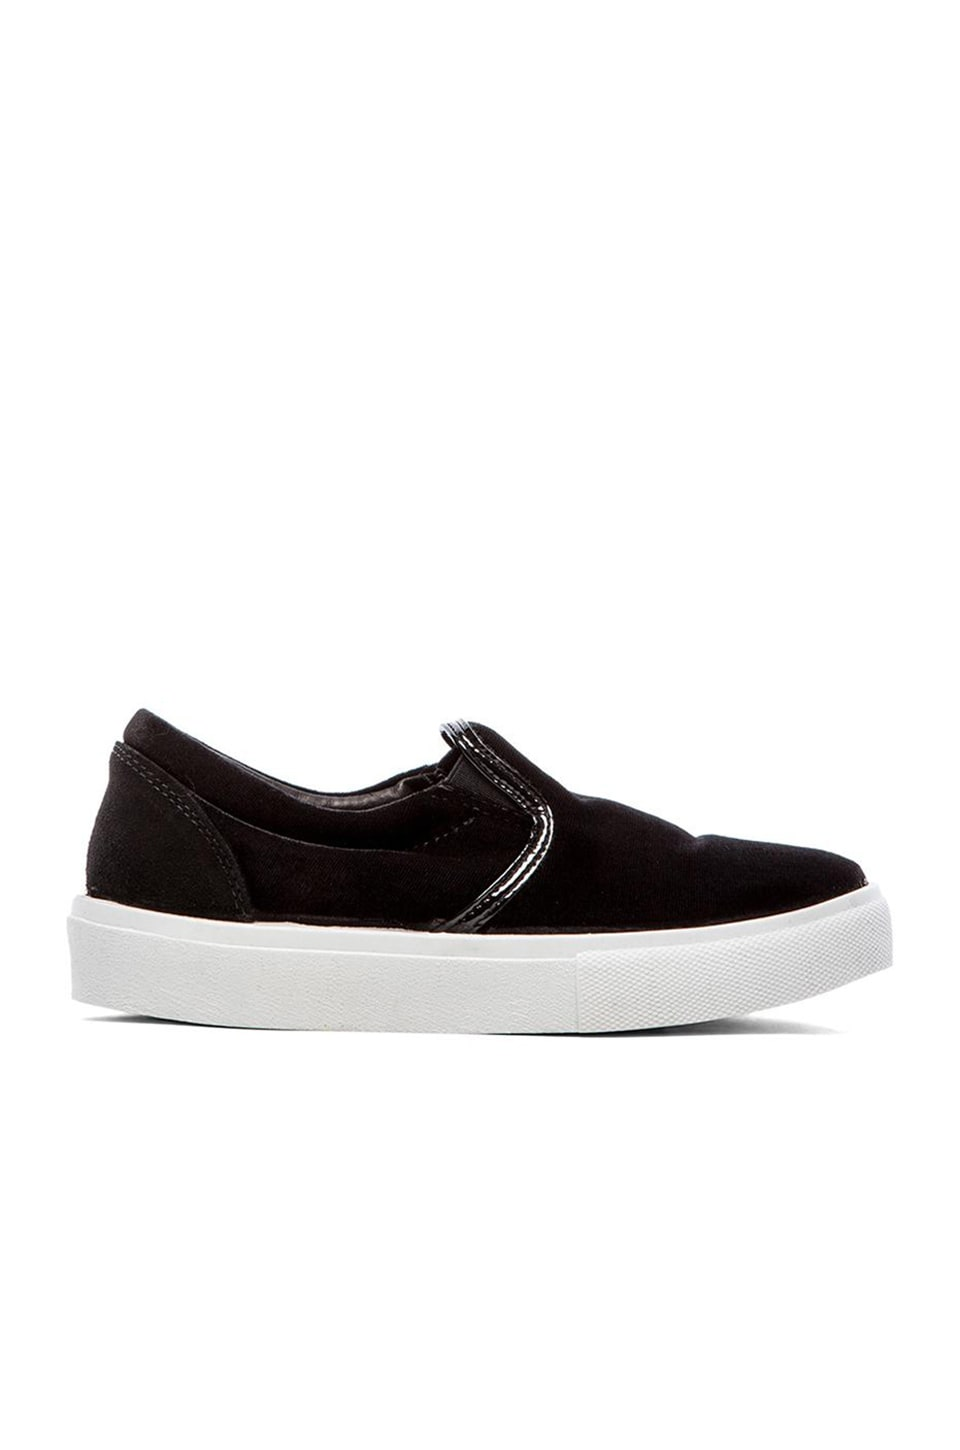 Chiara Ferragni Velvet Slip-On Sneaker in Black